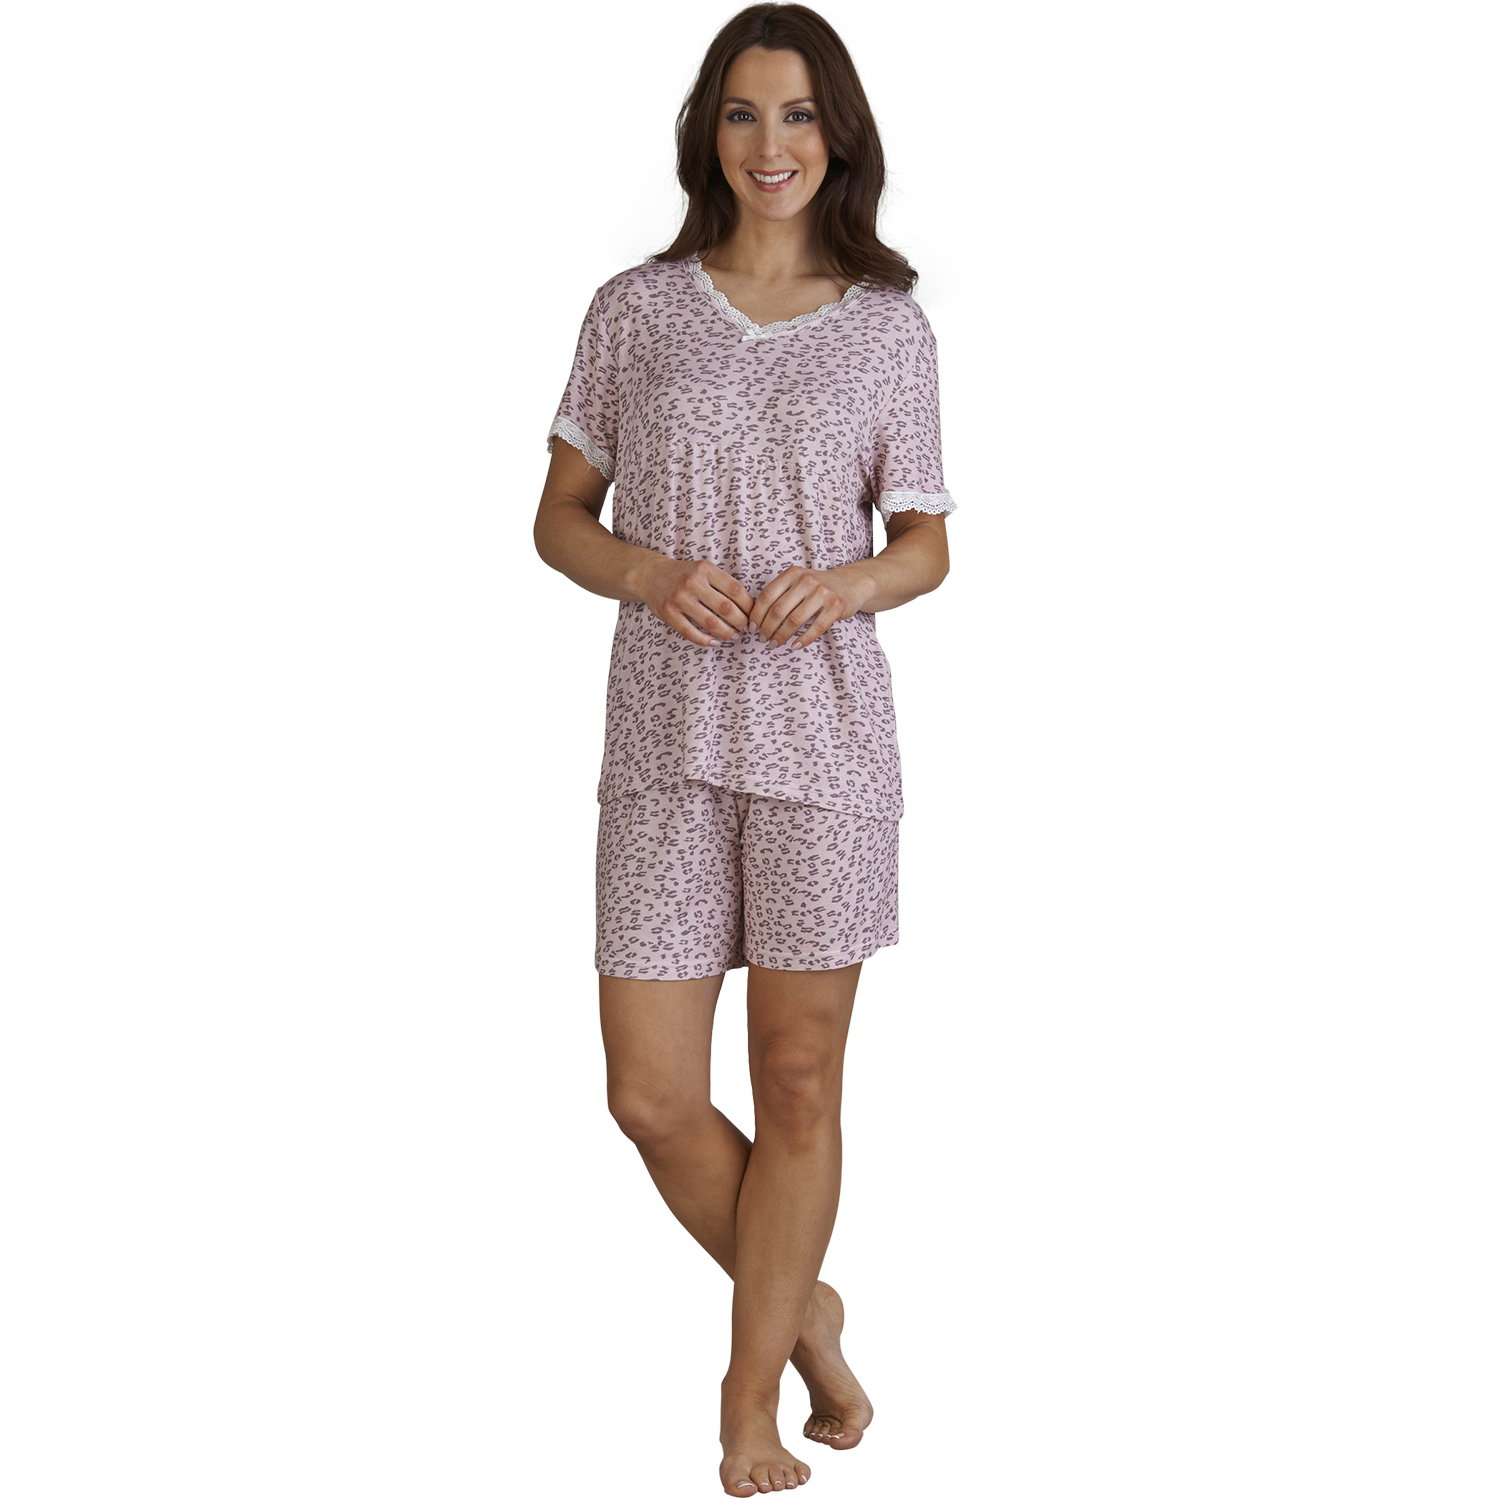 Browse our women's pajamas to find endless sleepwear styles. Pick sexy pjs in satin, cotton and more. Shop now at Victoria's Secret. Browse our women's pajamas to find endless sleepwear styles. Pick sexy pjs in satin, cotton and more. Shop now at Victoria's Secret. (SLEEPWEAR/PAJAMAS) The Sleepover Short Sleeve Knit PJ Quick View Quick View.